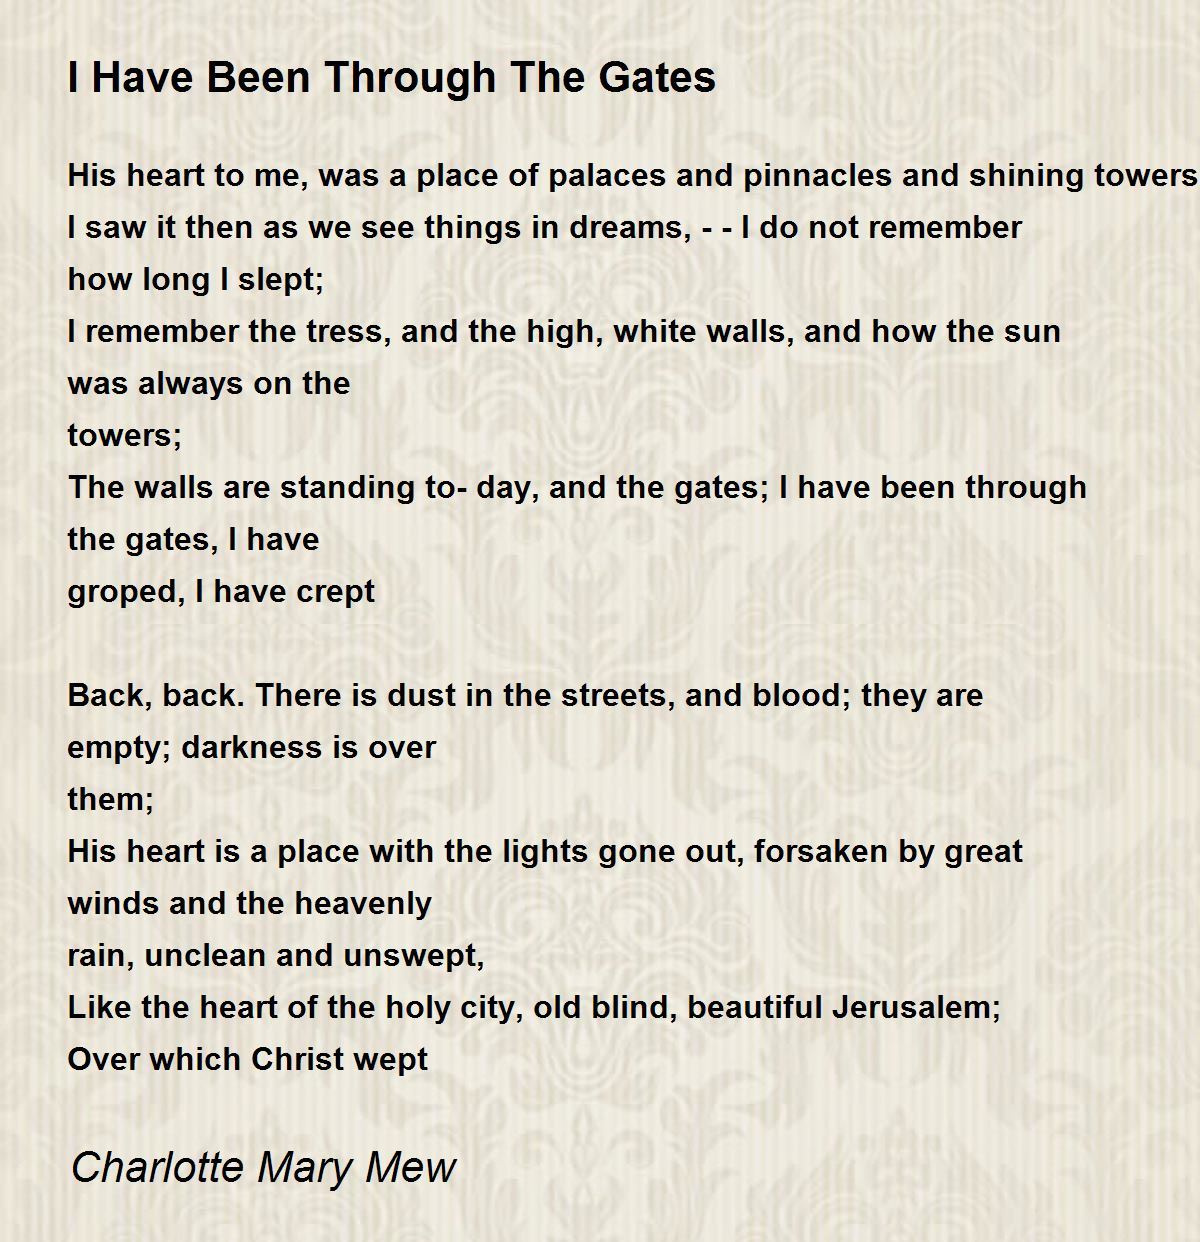 I Have Been Through The Gates Poem by Charlotte Mary Mew - Poem Hunter Comments